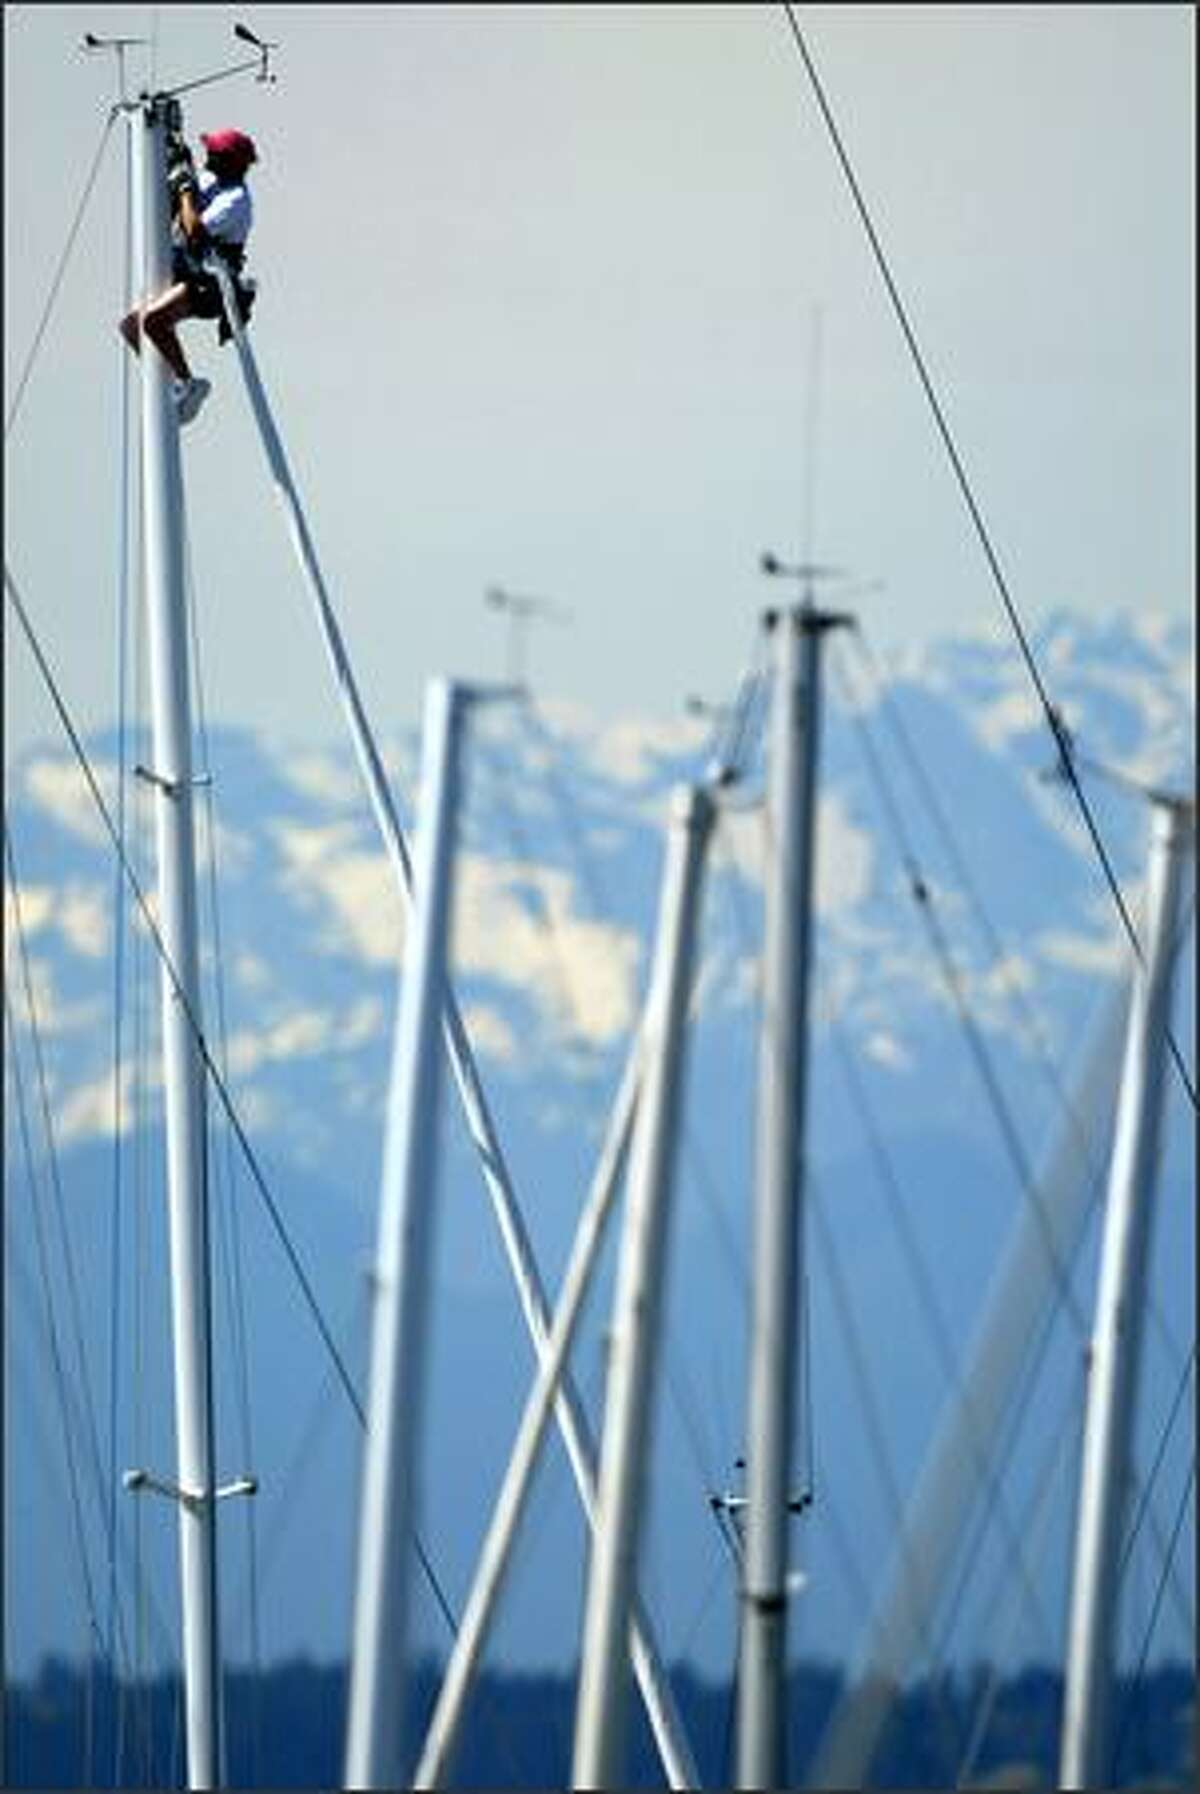 Dave White takes advantage of warm weather Friday while he works on the rigging of the sailboat Kaulana at Shilshole Bay Marina in Ballard. The Olympic Mountians are seen in the background. Photo by Joshua Trujillo / Seattle Post-Intelligencer